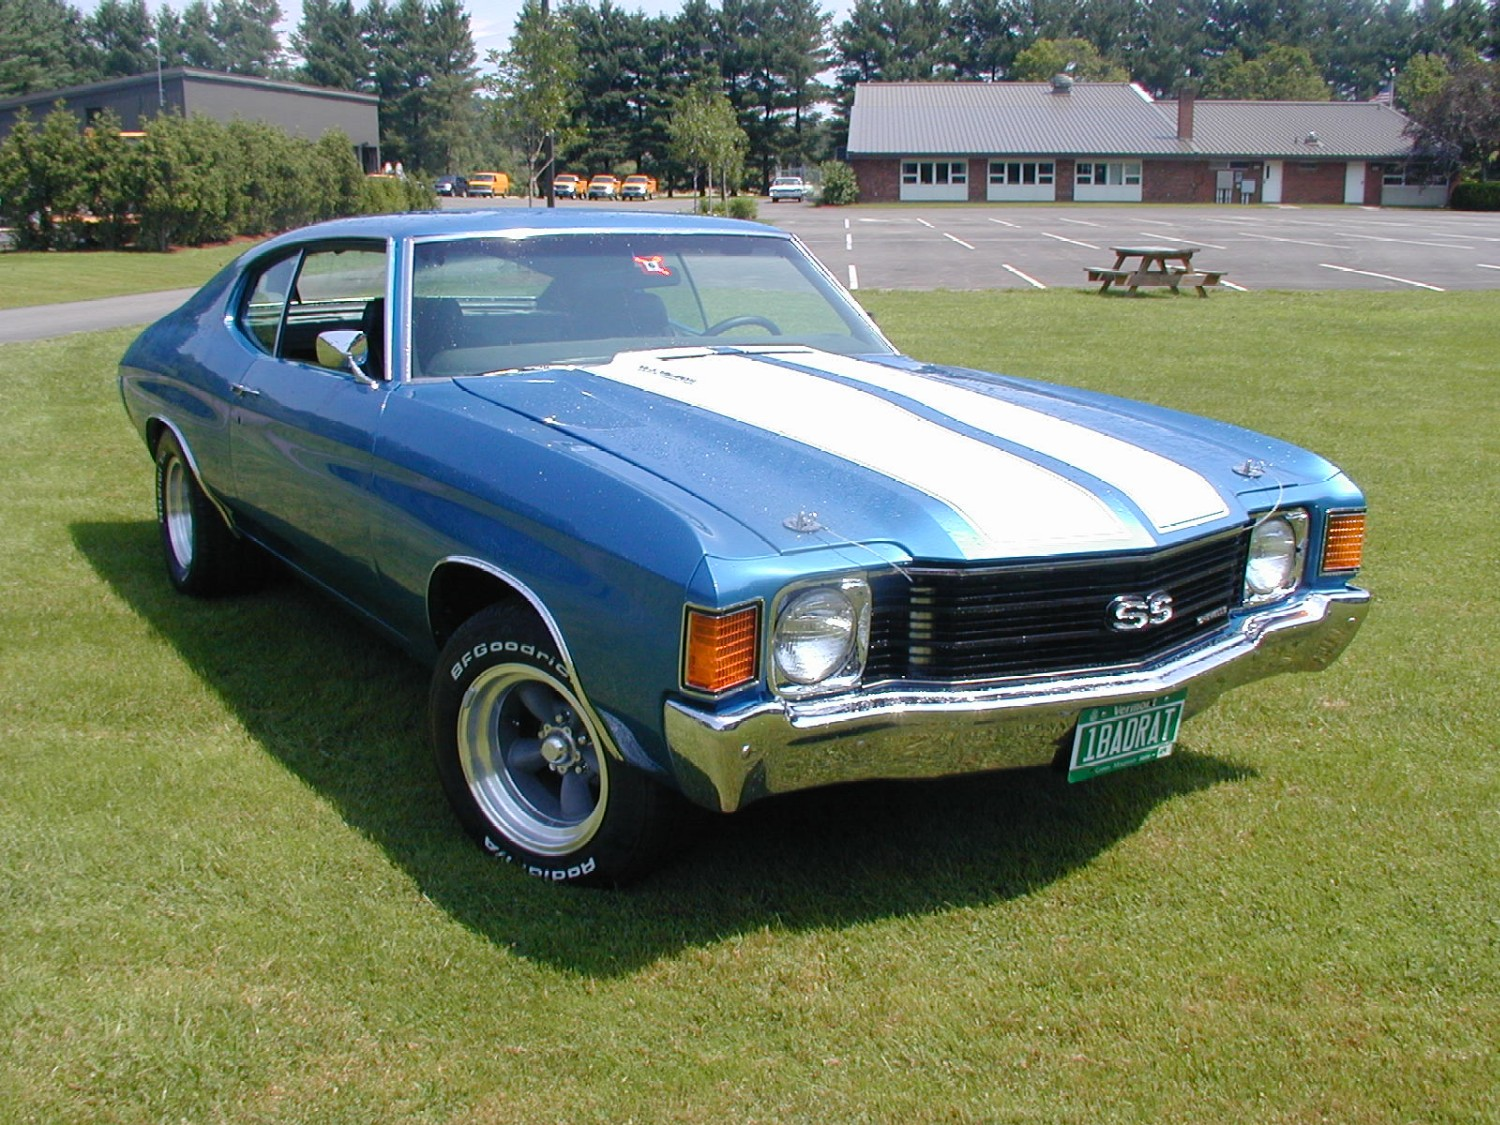 1972 Chevrolet Chevelles For Sale Used Cars And Vehicles